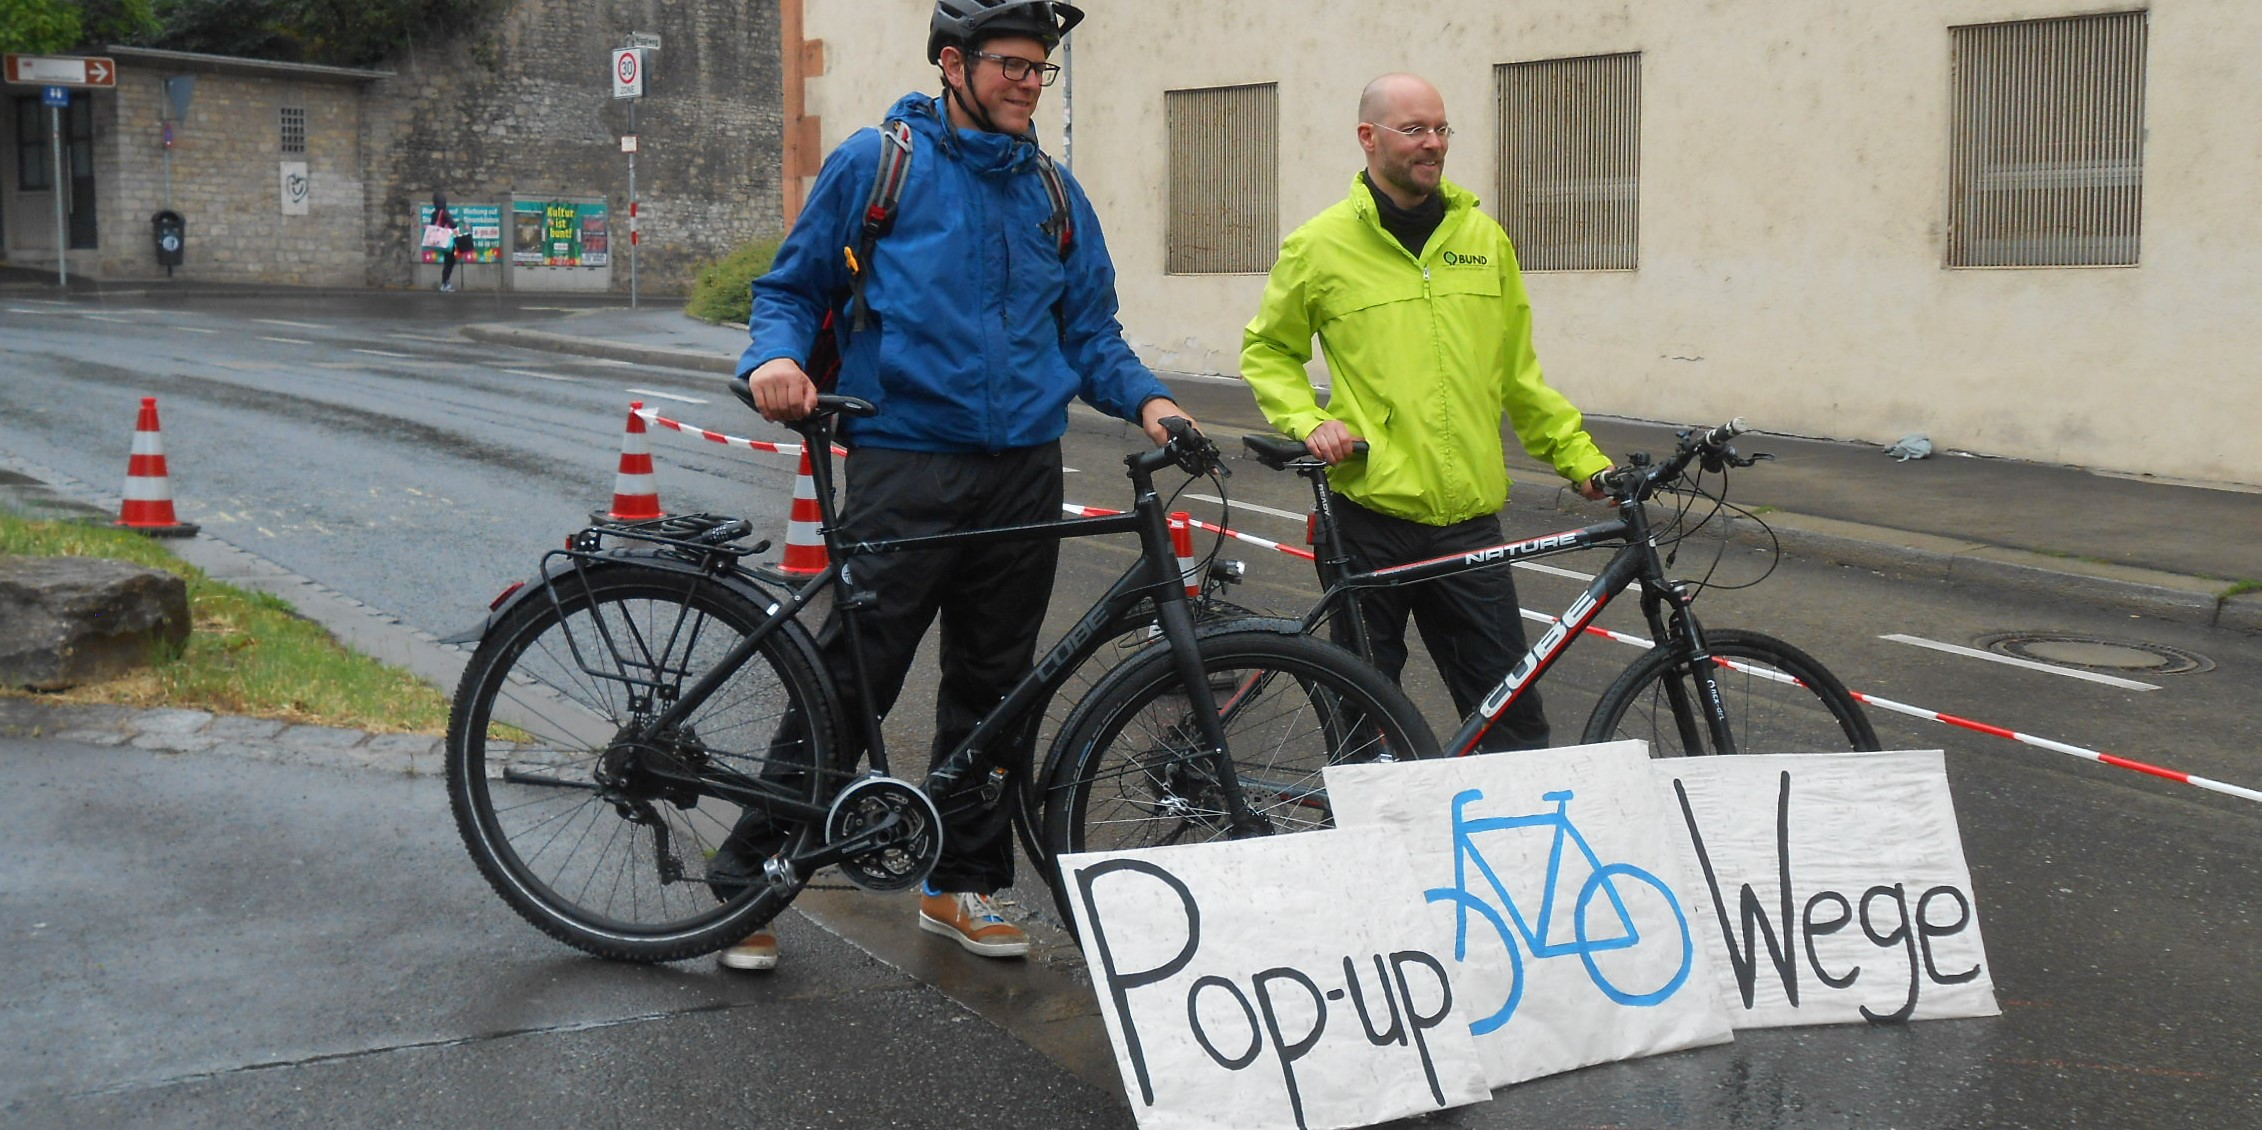 Pop-up-Bike-Lanes (Würzburg) - Foto: Leonie Keupp